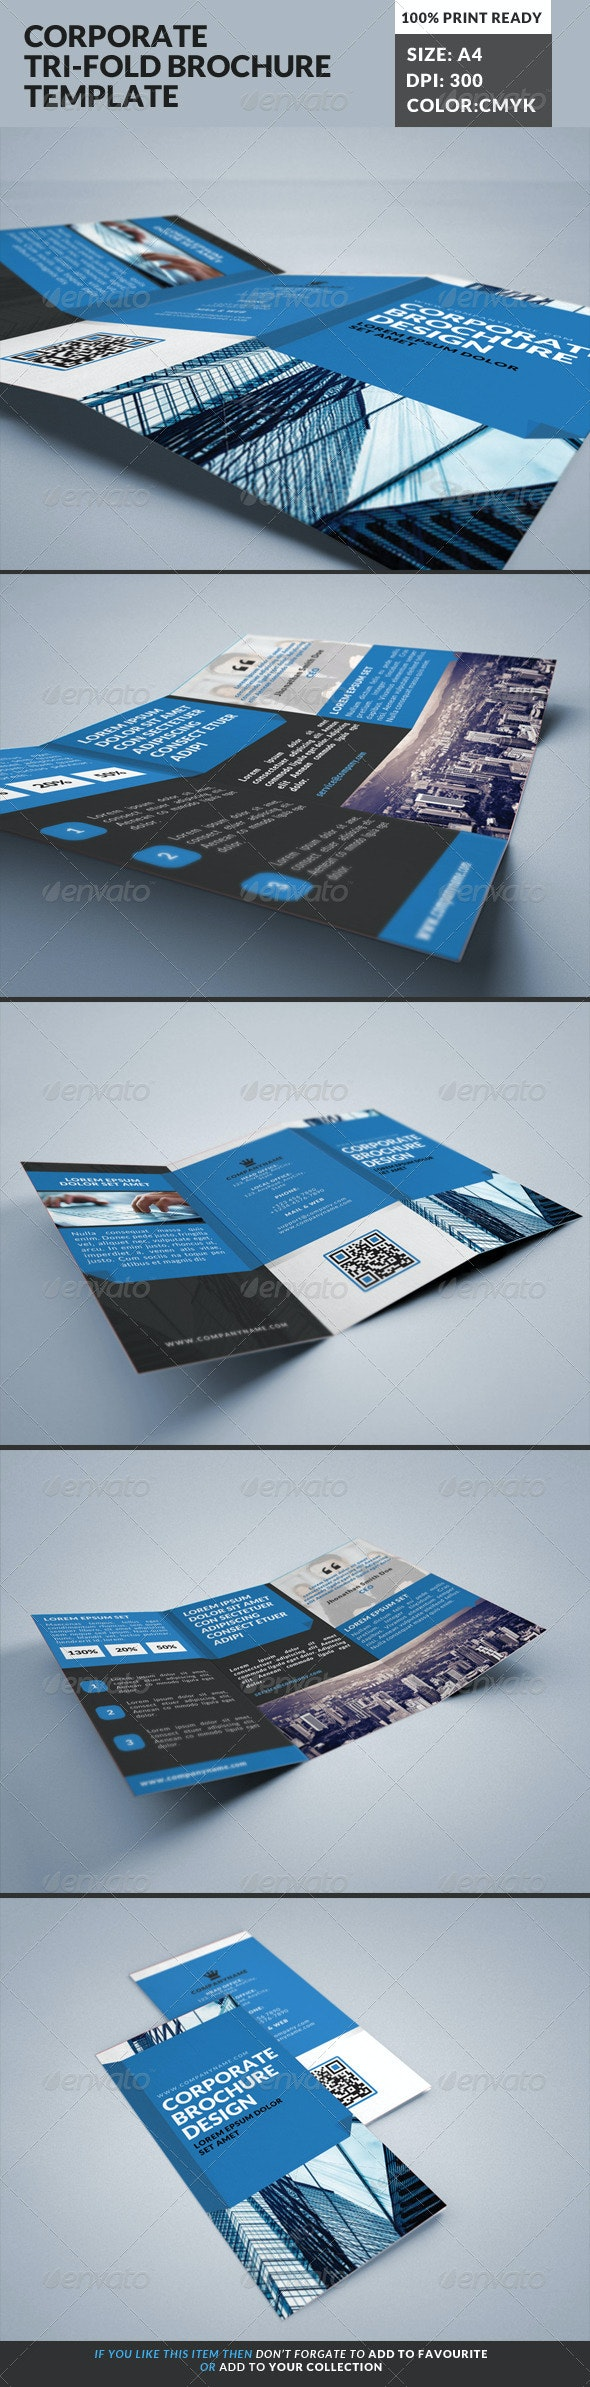 Corporate Tri-Fold Brochures Template 20 - Corporate Brochures